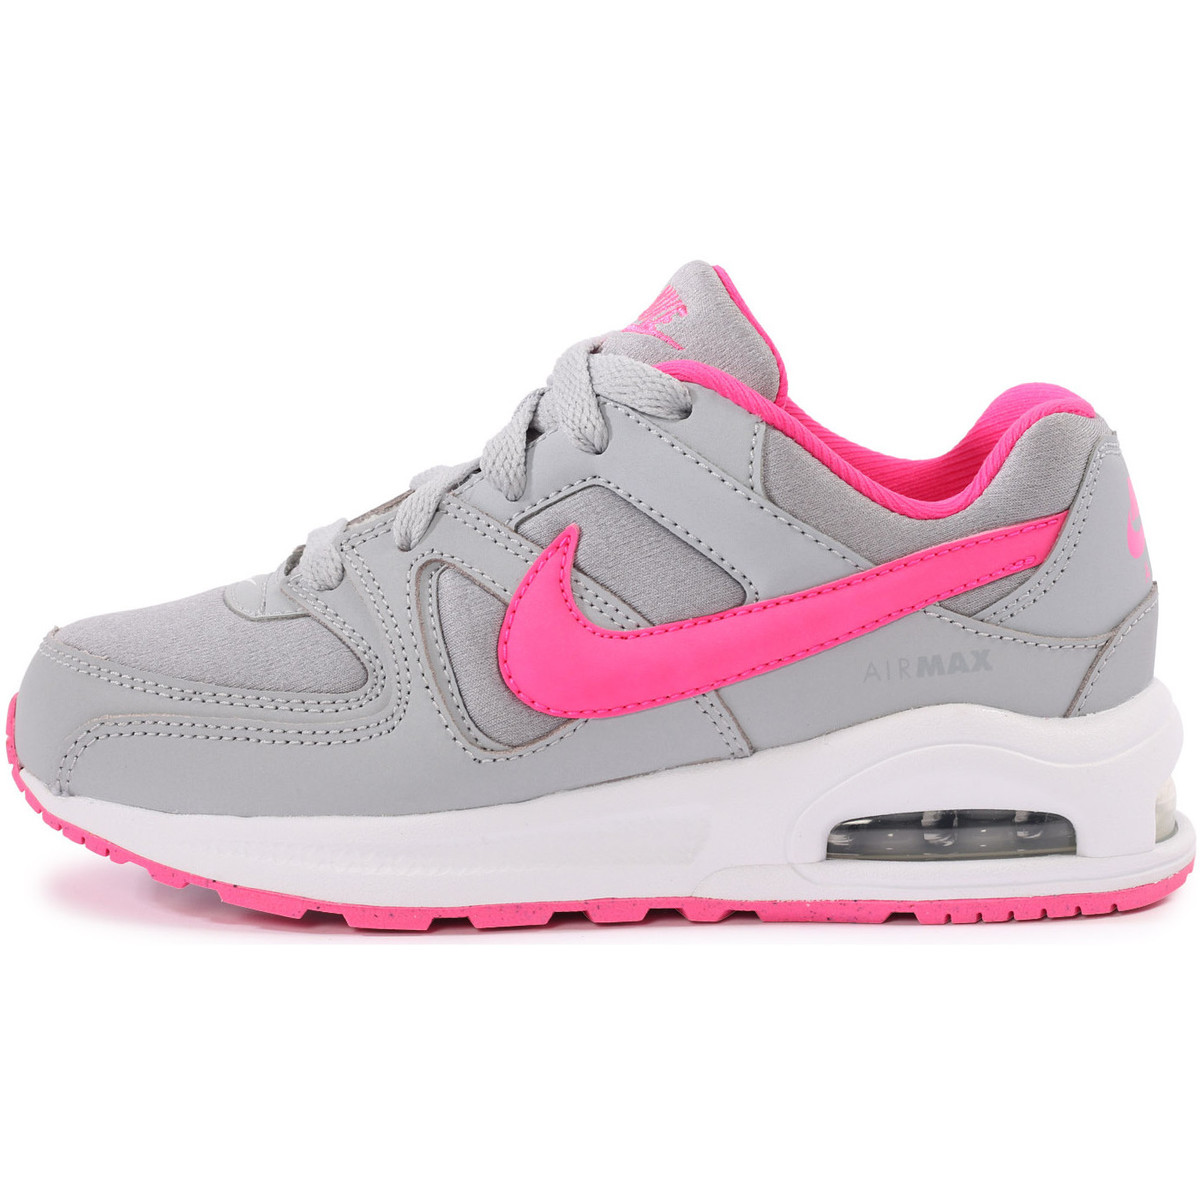 Chaussures-de-running Nike Air Max CommandEnfant Gris/Rose